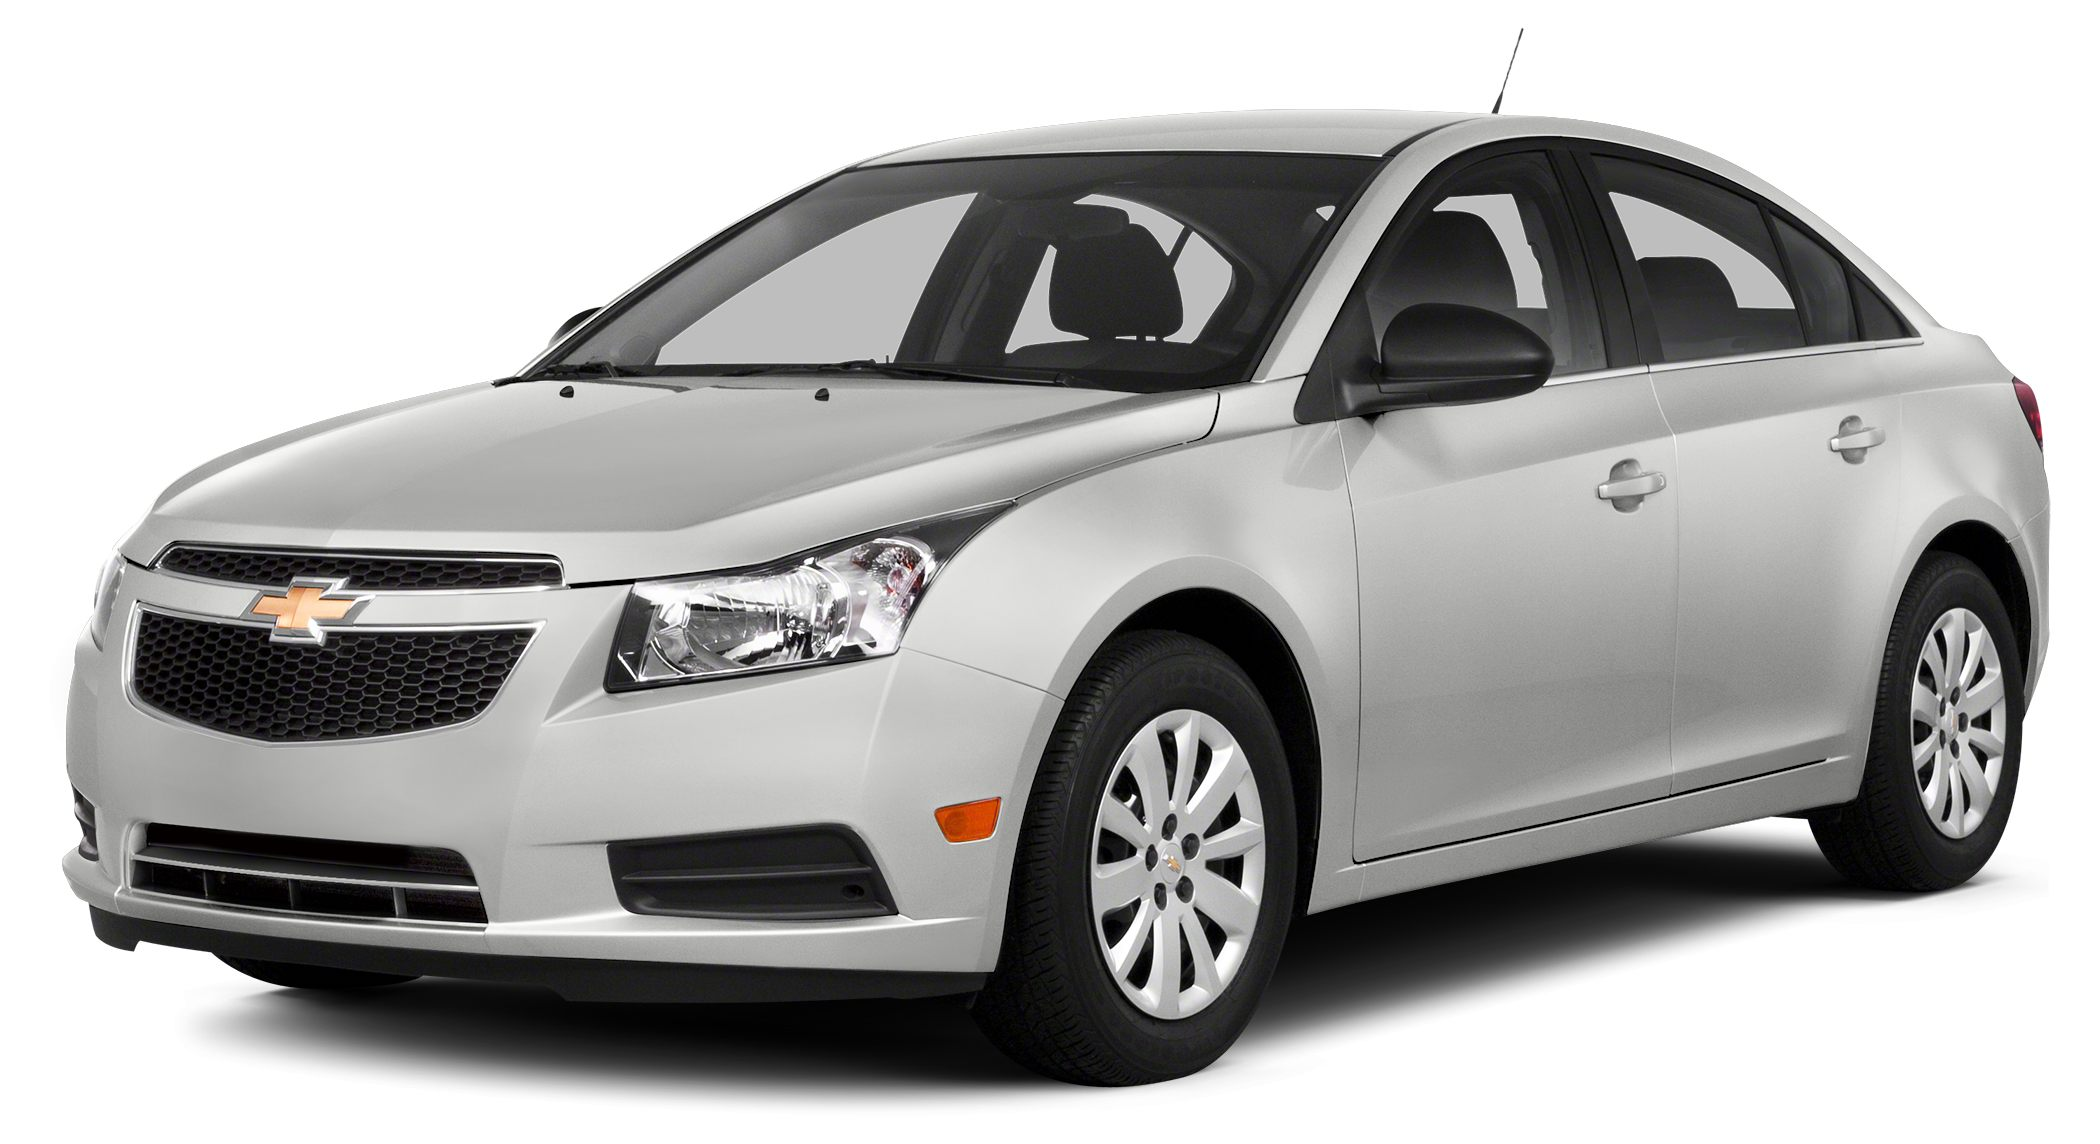 2014 Chevrolet Cruze LTZ CarFax 1-Owner This 2014 Chevrolet Cruze LTZ is a 100 Carfax Guarantee